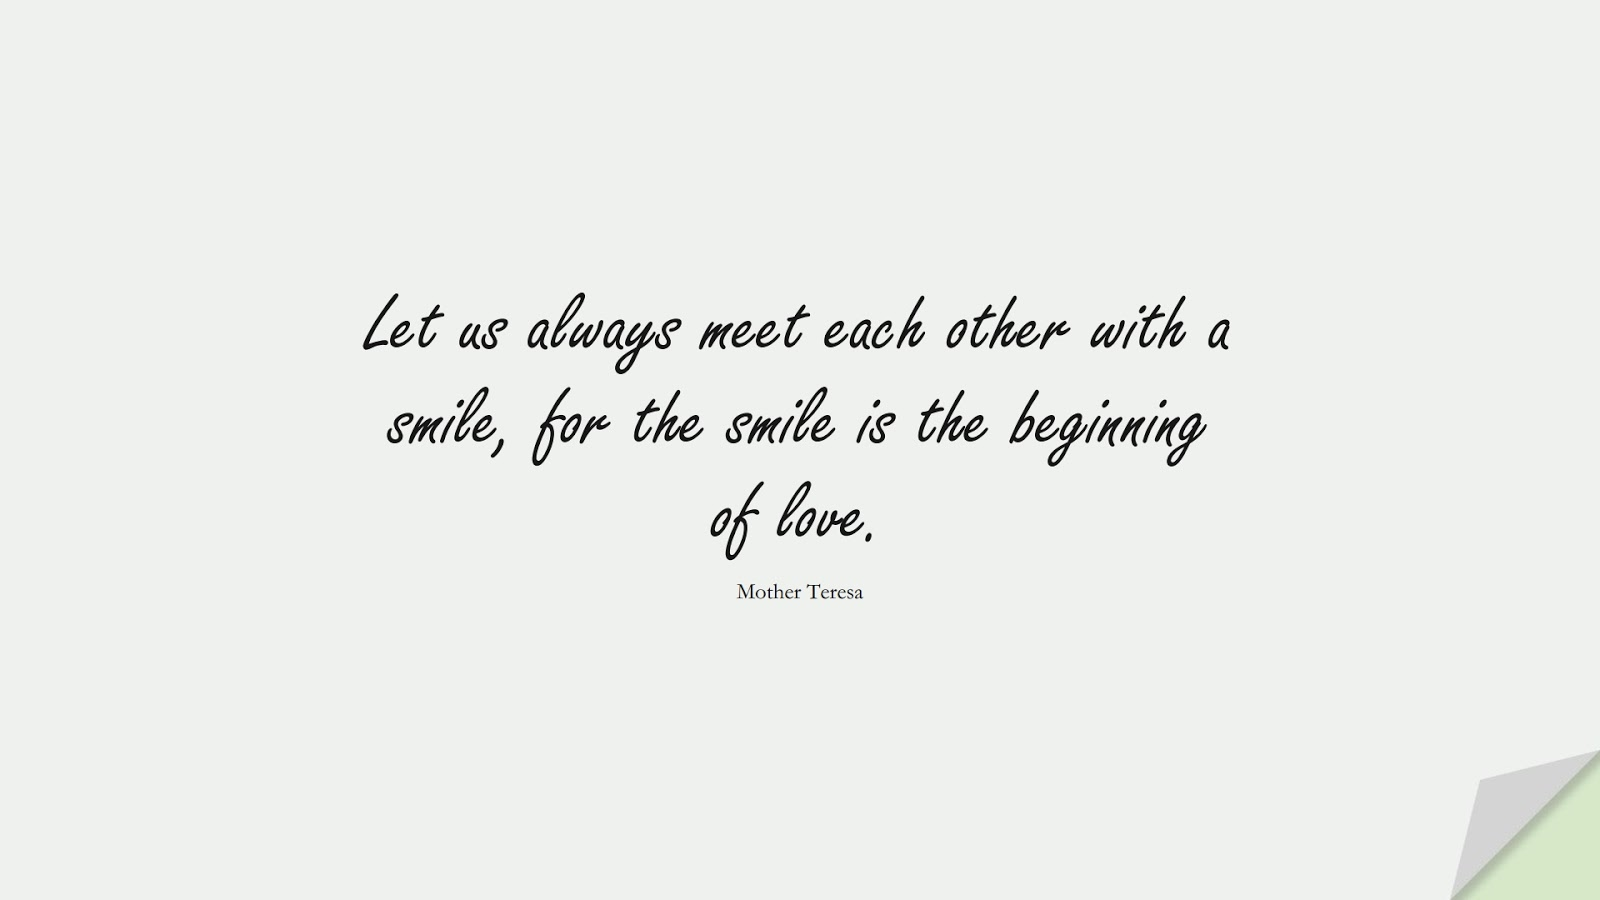 Let us always meet each other with a smile, for the smile is the beginning of love. (Mother Teresa);  #LoveQuotes